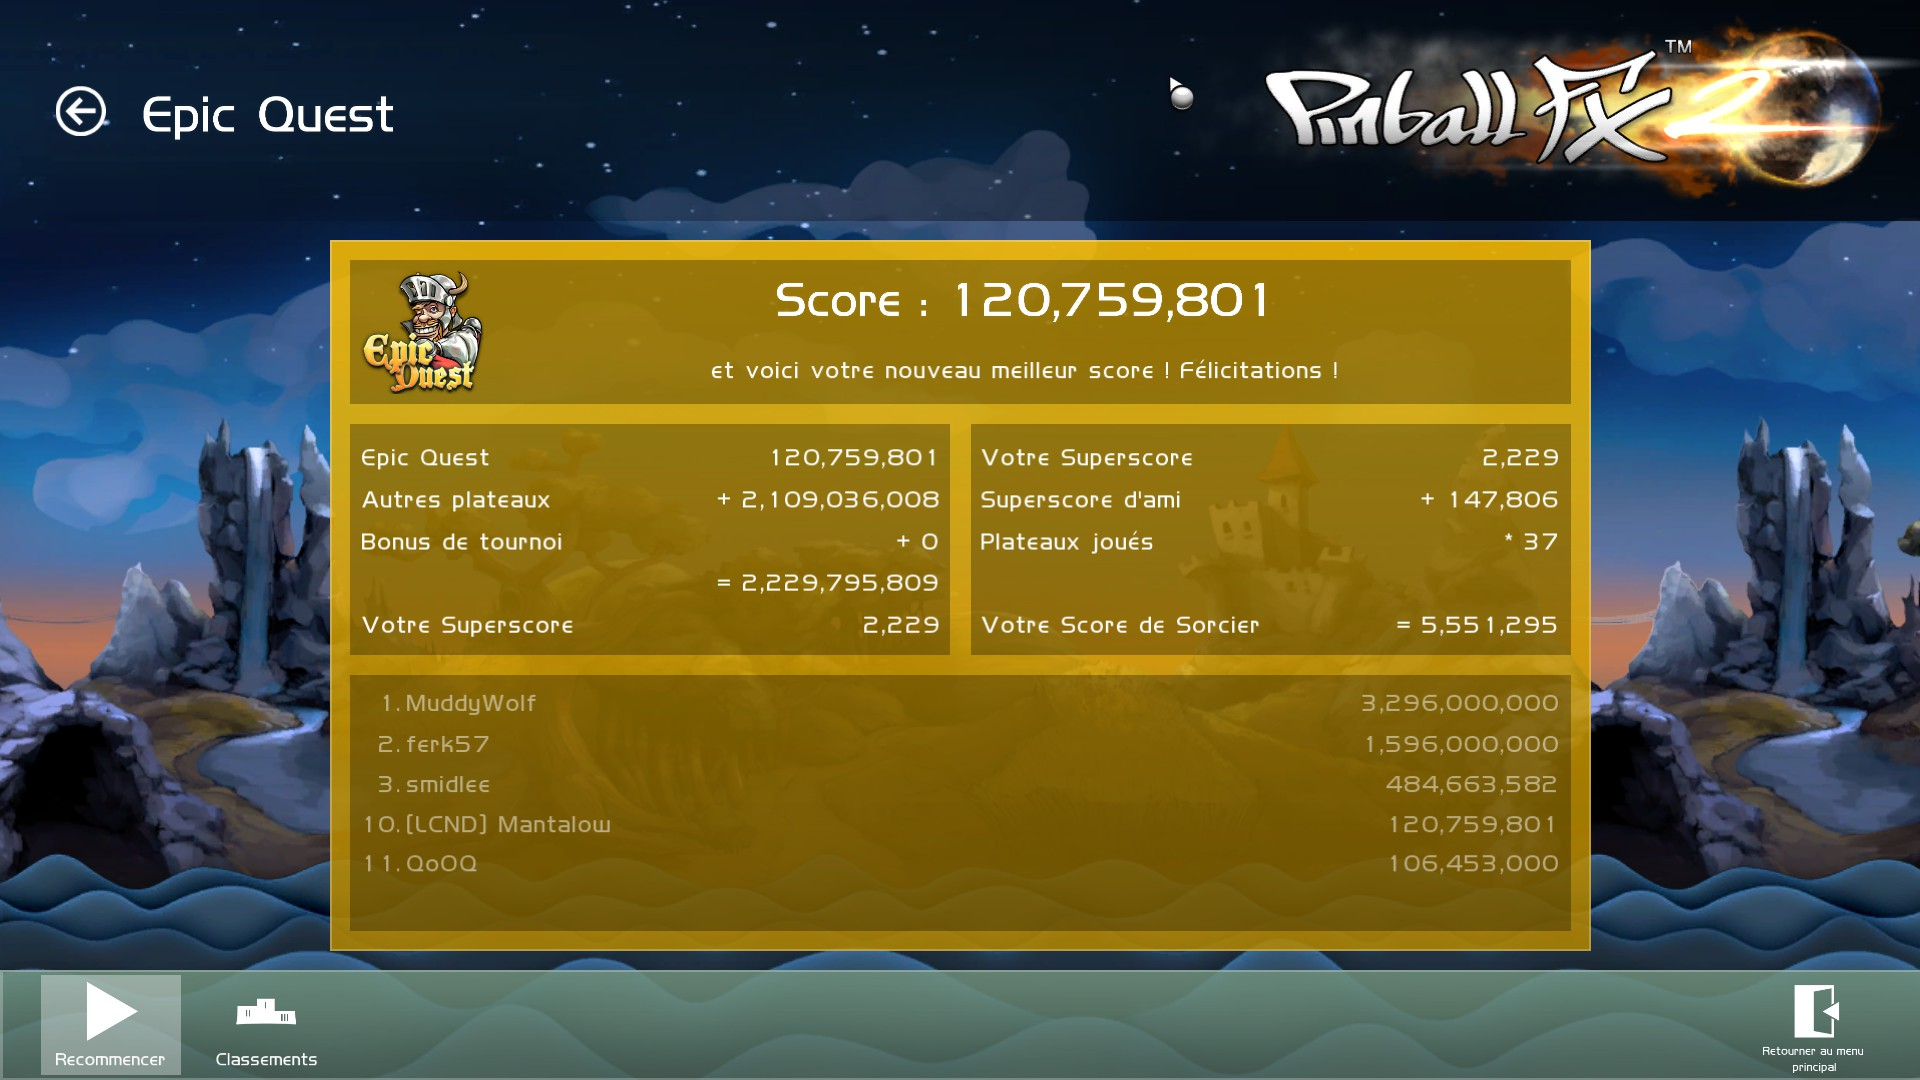 Mantalow: Pinball FX 2: Epic Quest (PC) 120,759,801 points on 2015-03-05 10:08:03